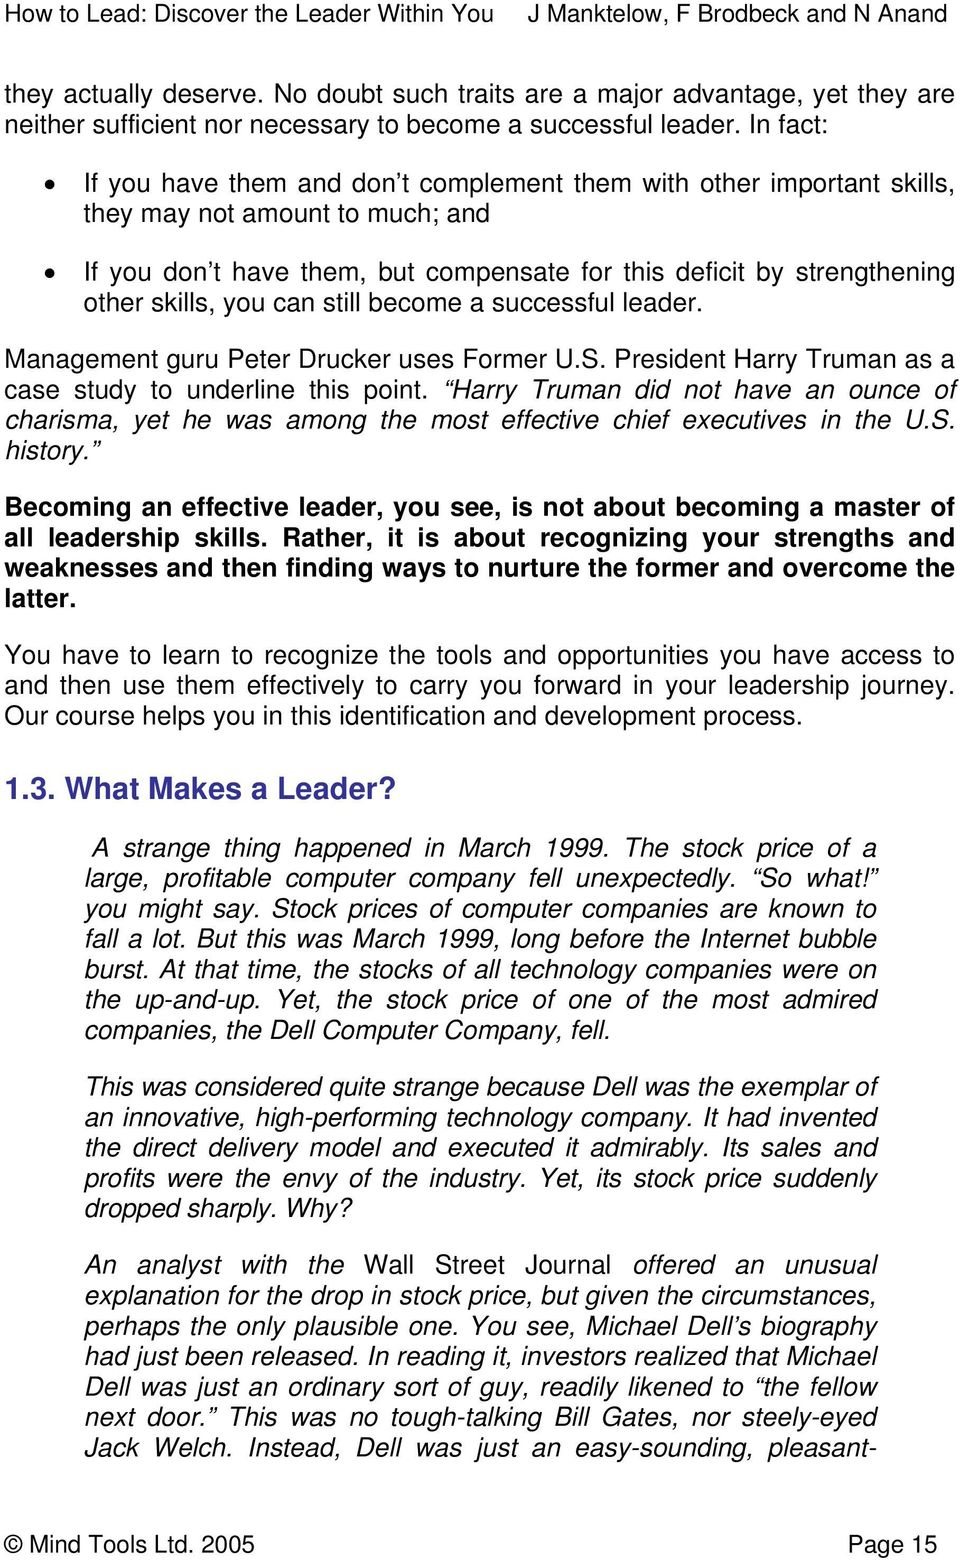 skills, you can still become a successful leader. Management guru Peter Drucker uses Former U.S. President Harry Truman as a case study to underline this point.